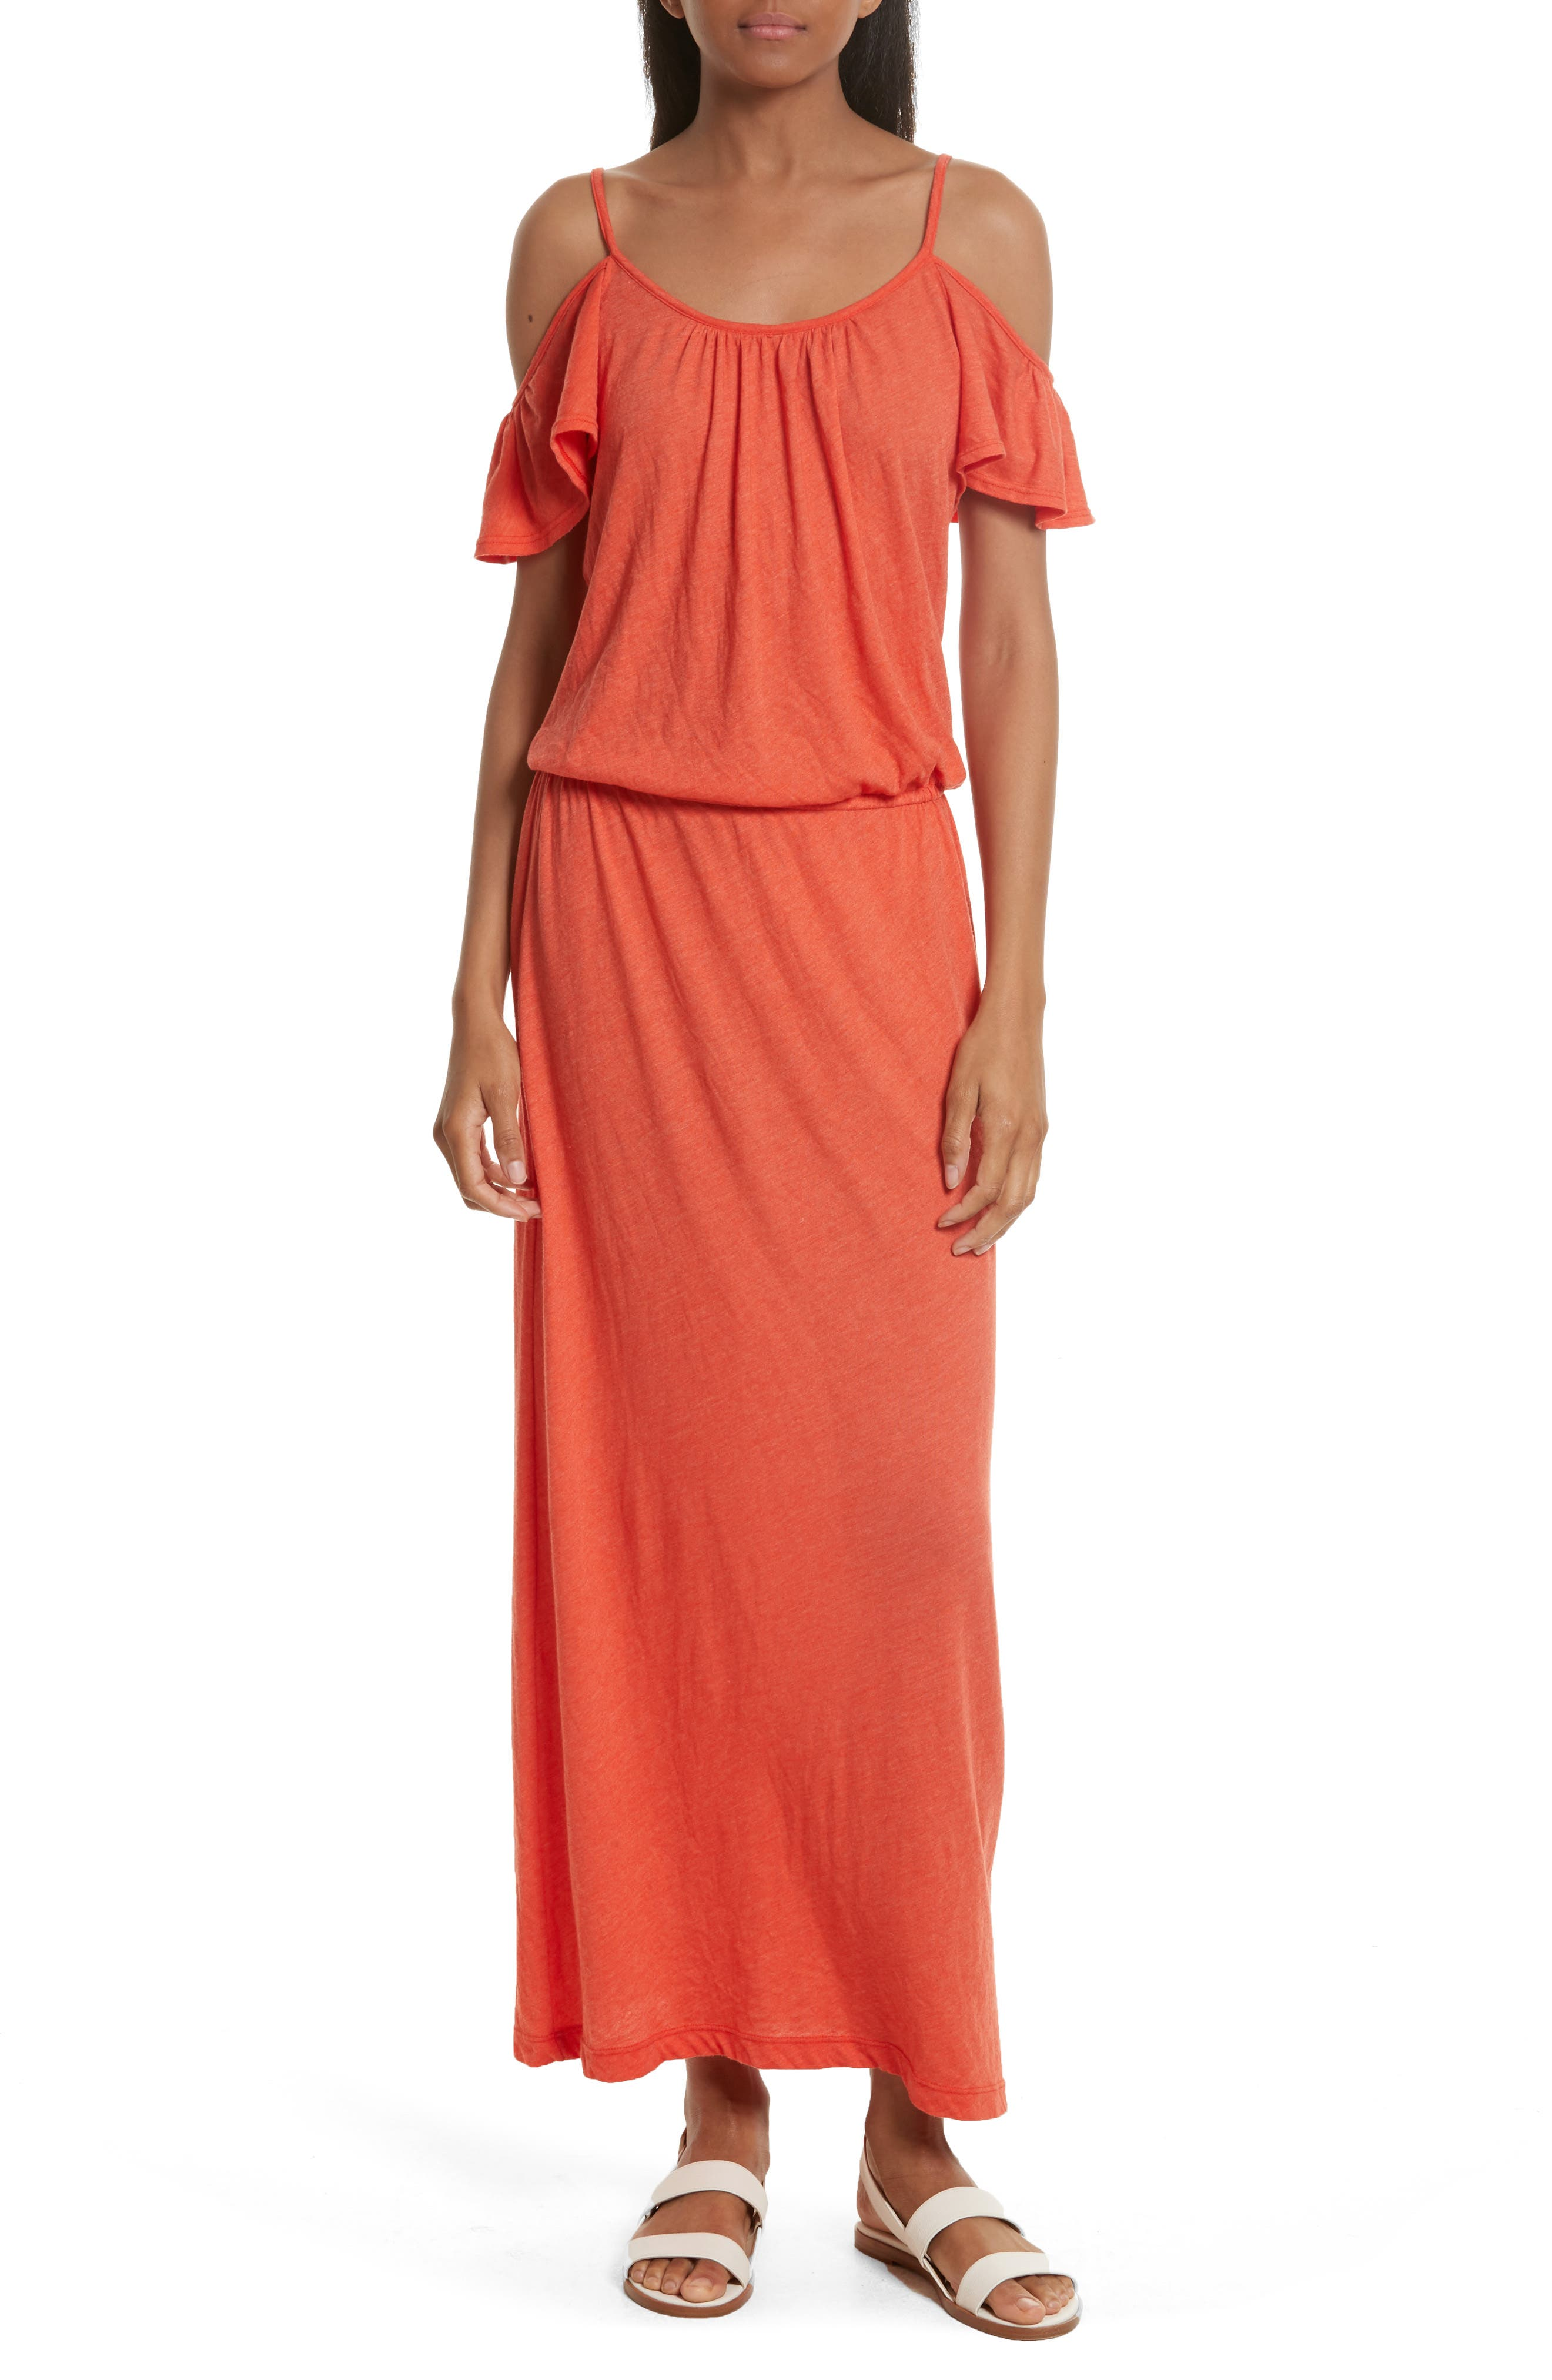 Soft Joie Jassina Jersey Maxi Dress